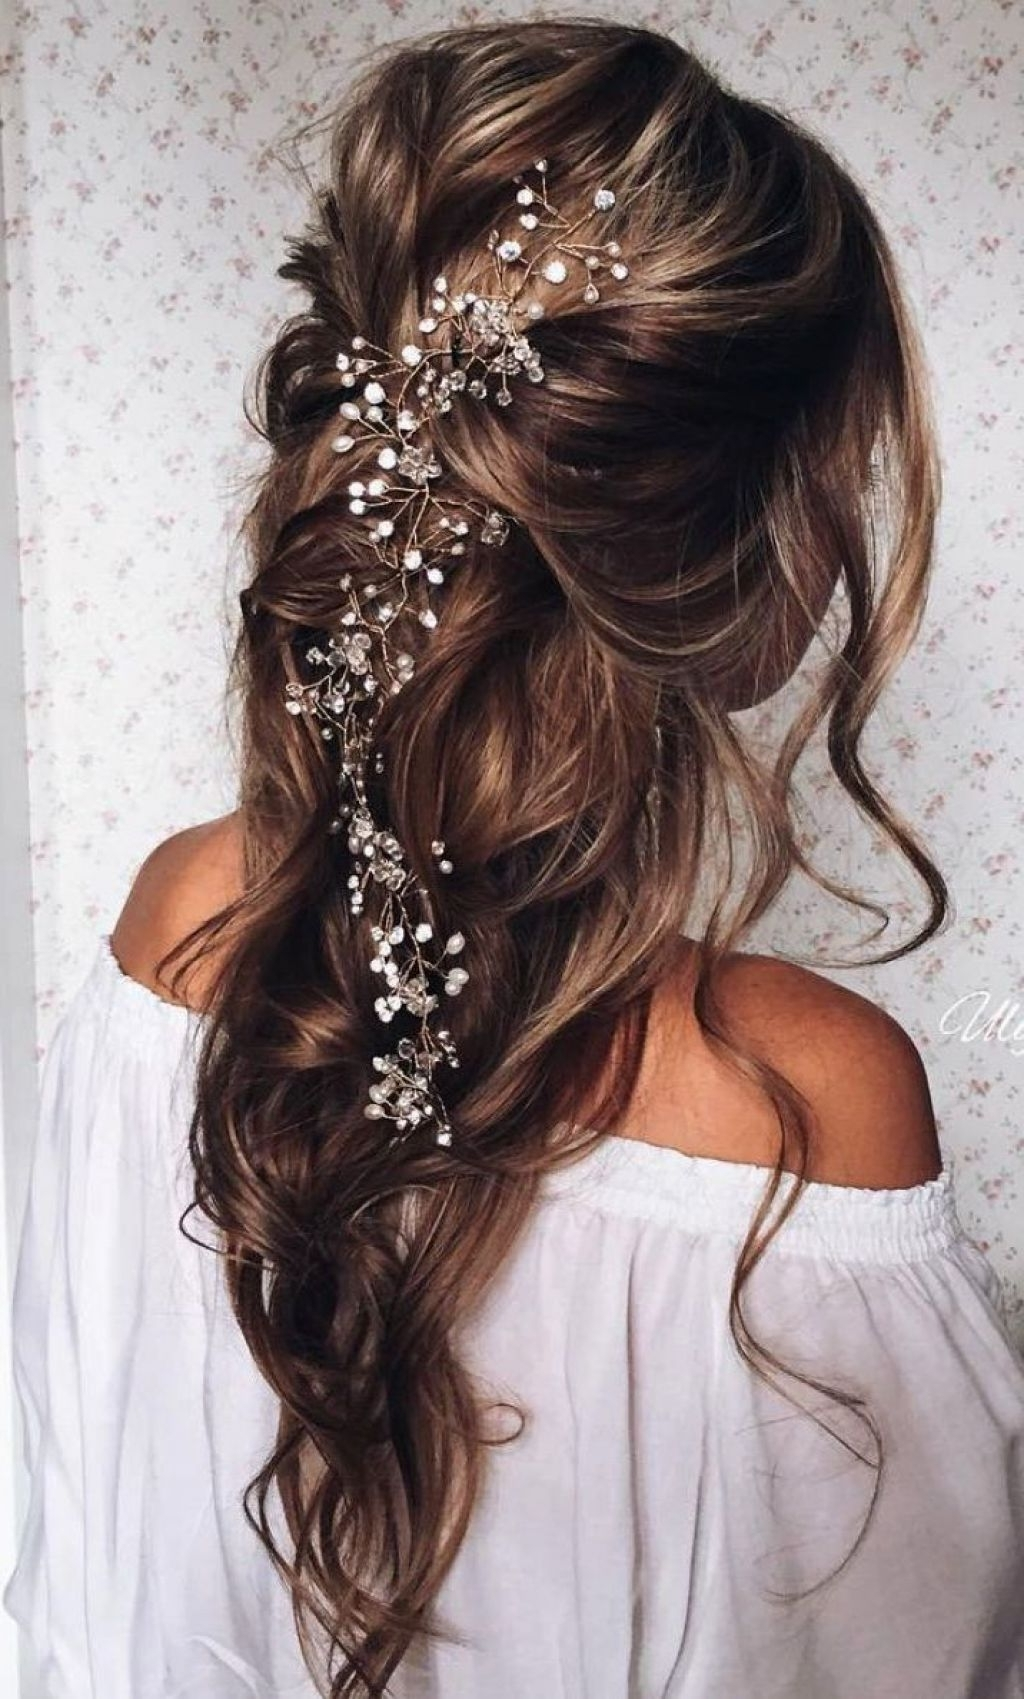 Latest Wedding Hairstyles For Long Hair Down With Flowers Inside √ 24+ Fresh Wedding Hairstyles For Long Hair Down: Wedding (View 8 of 15)